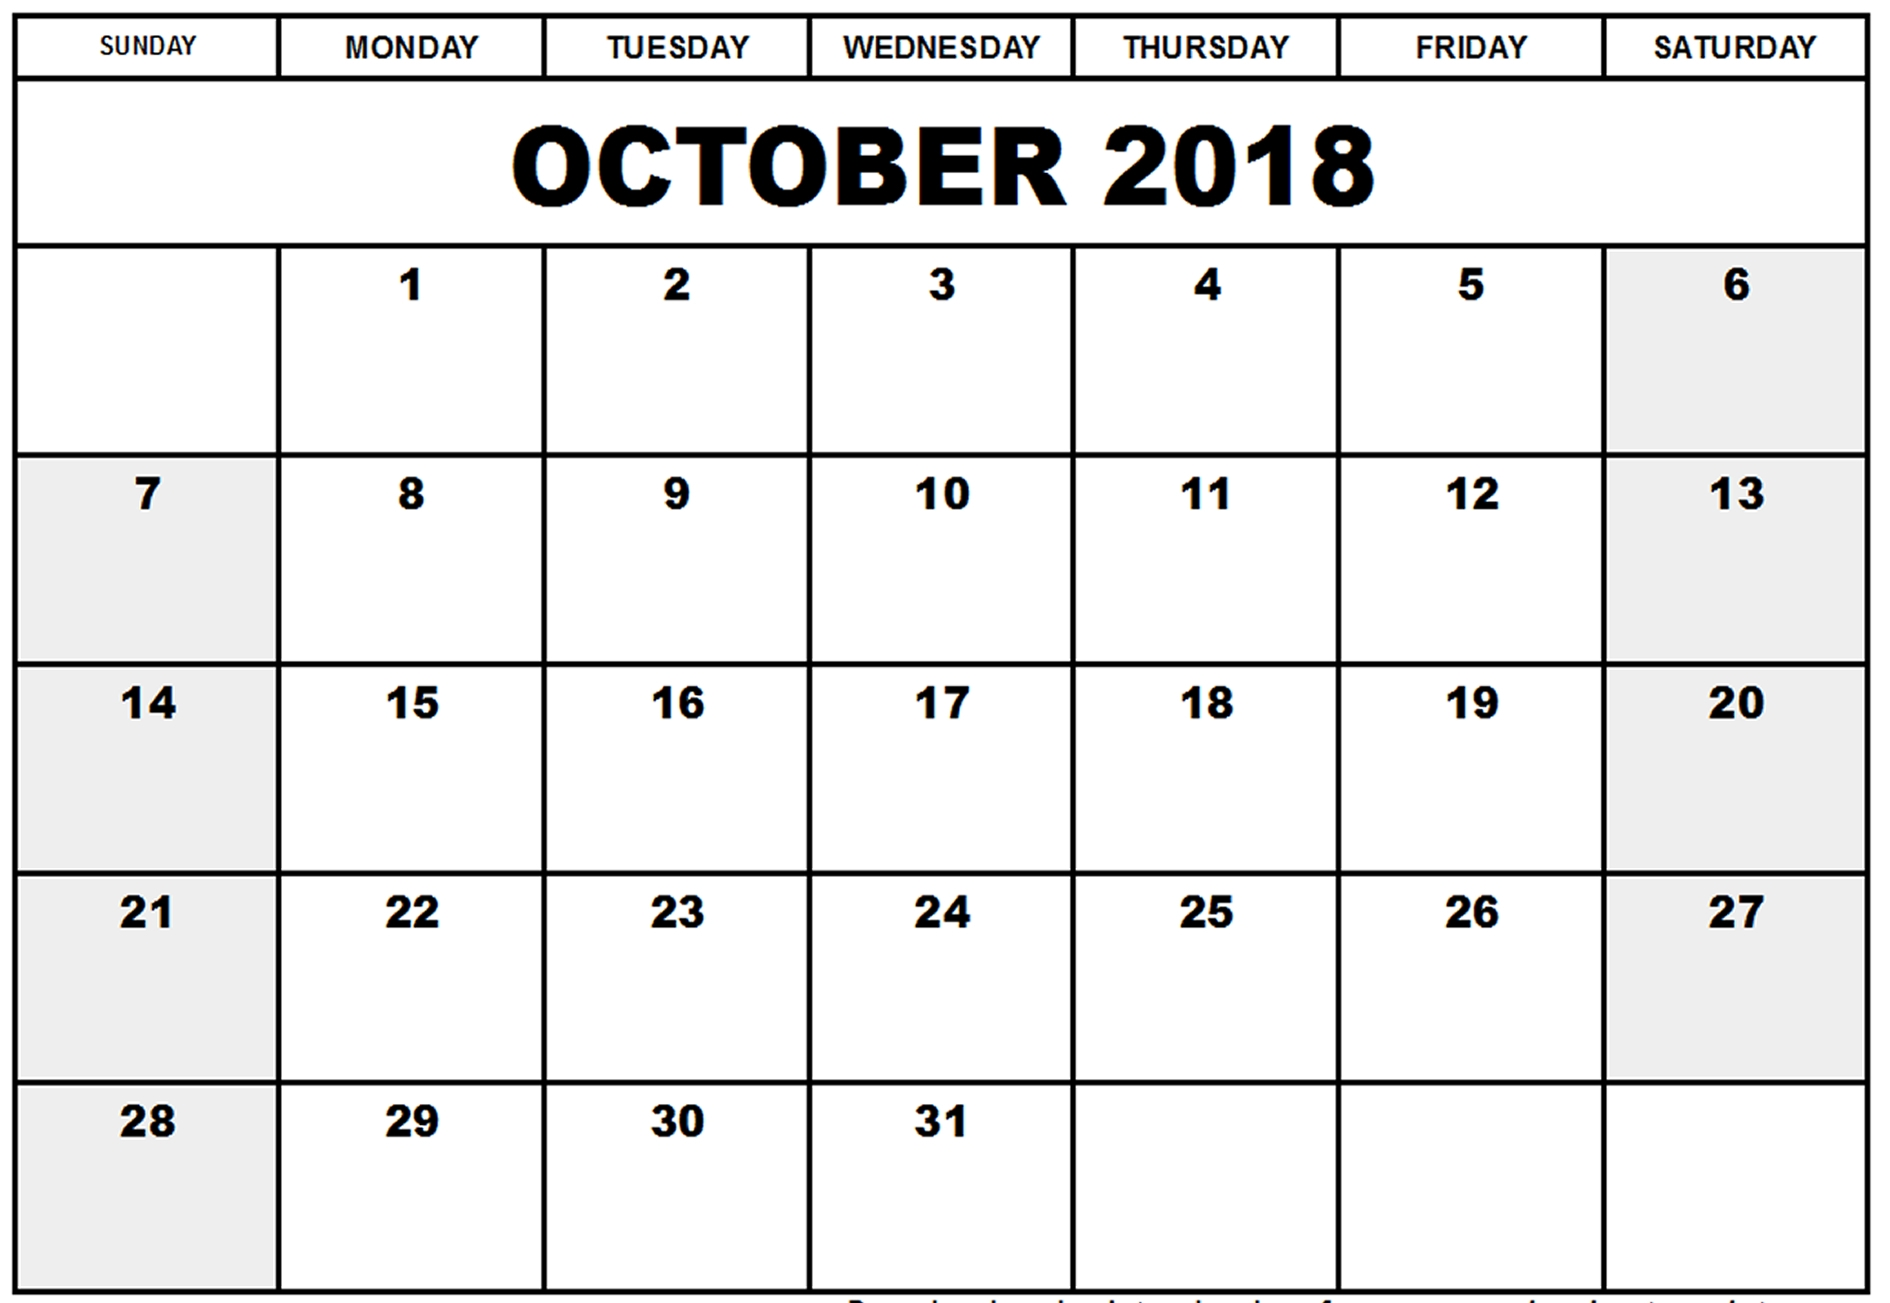 October 2018 Calendar In Excel